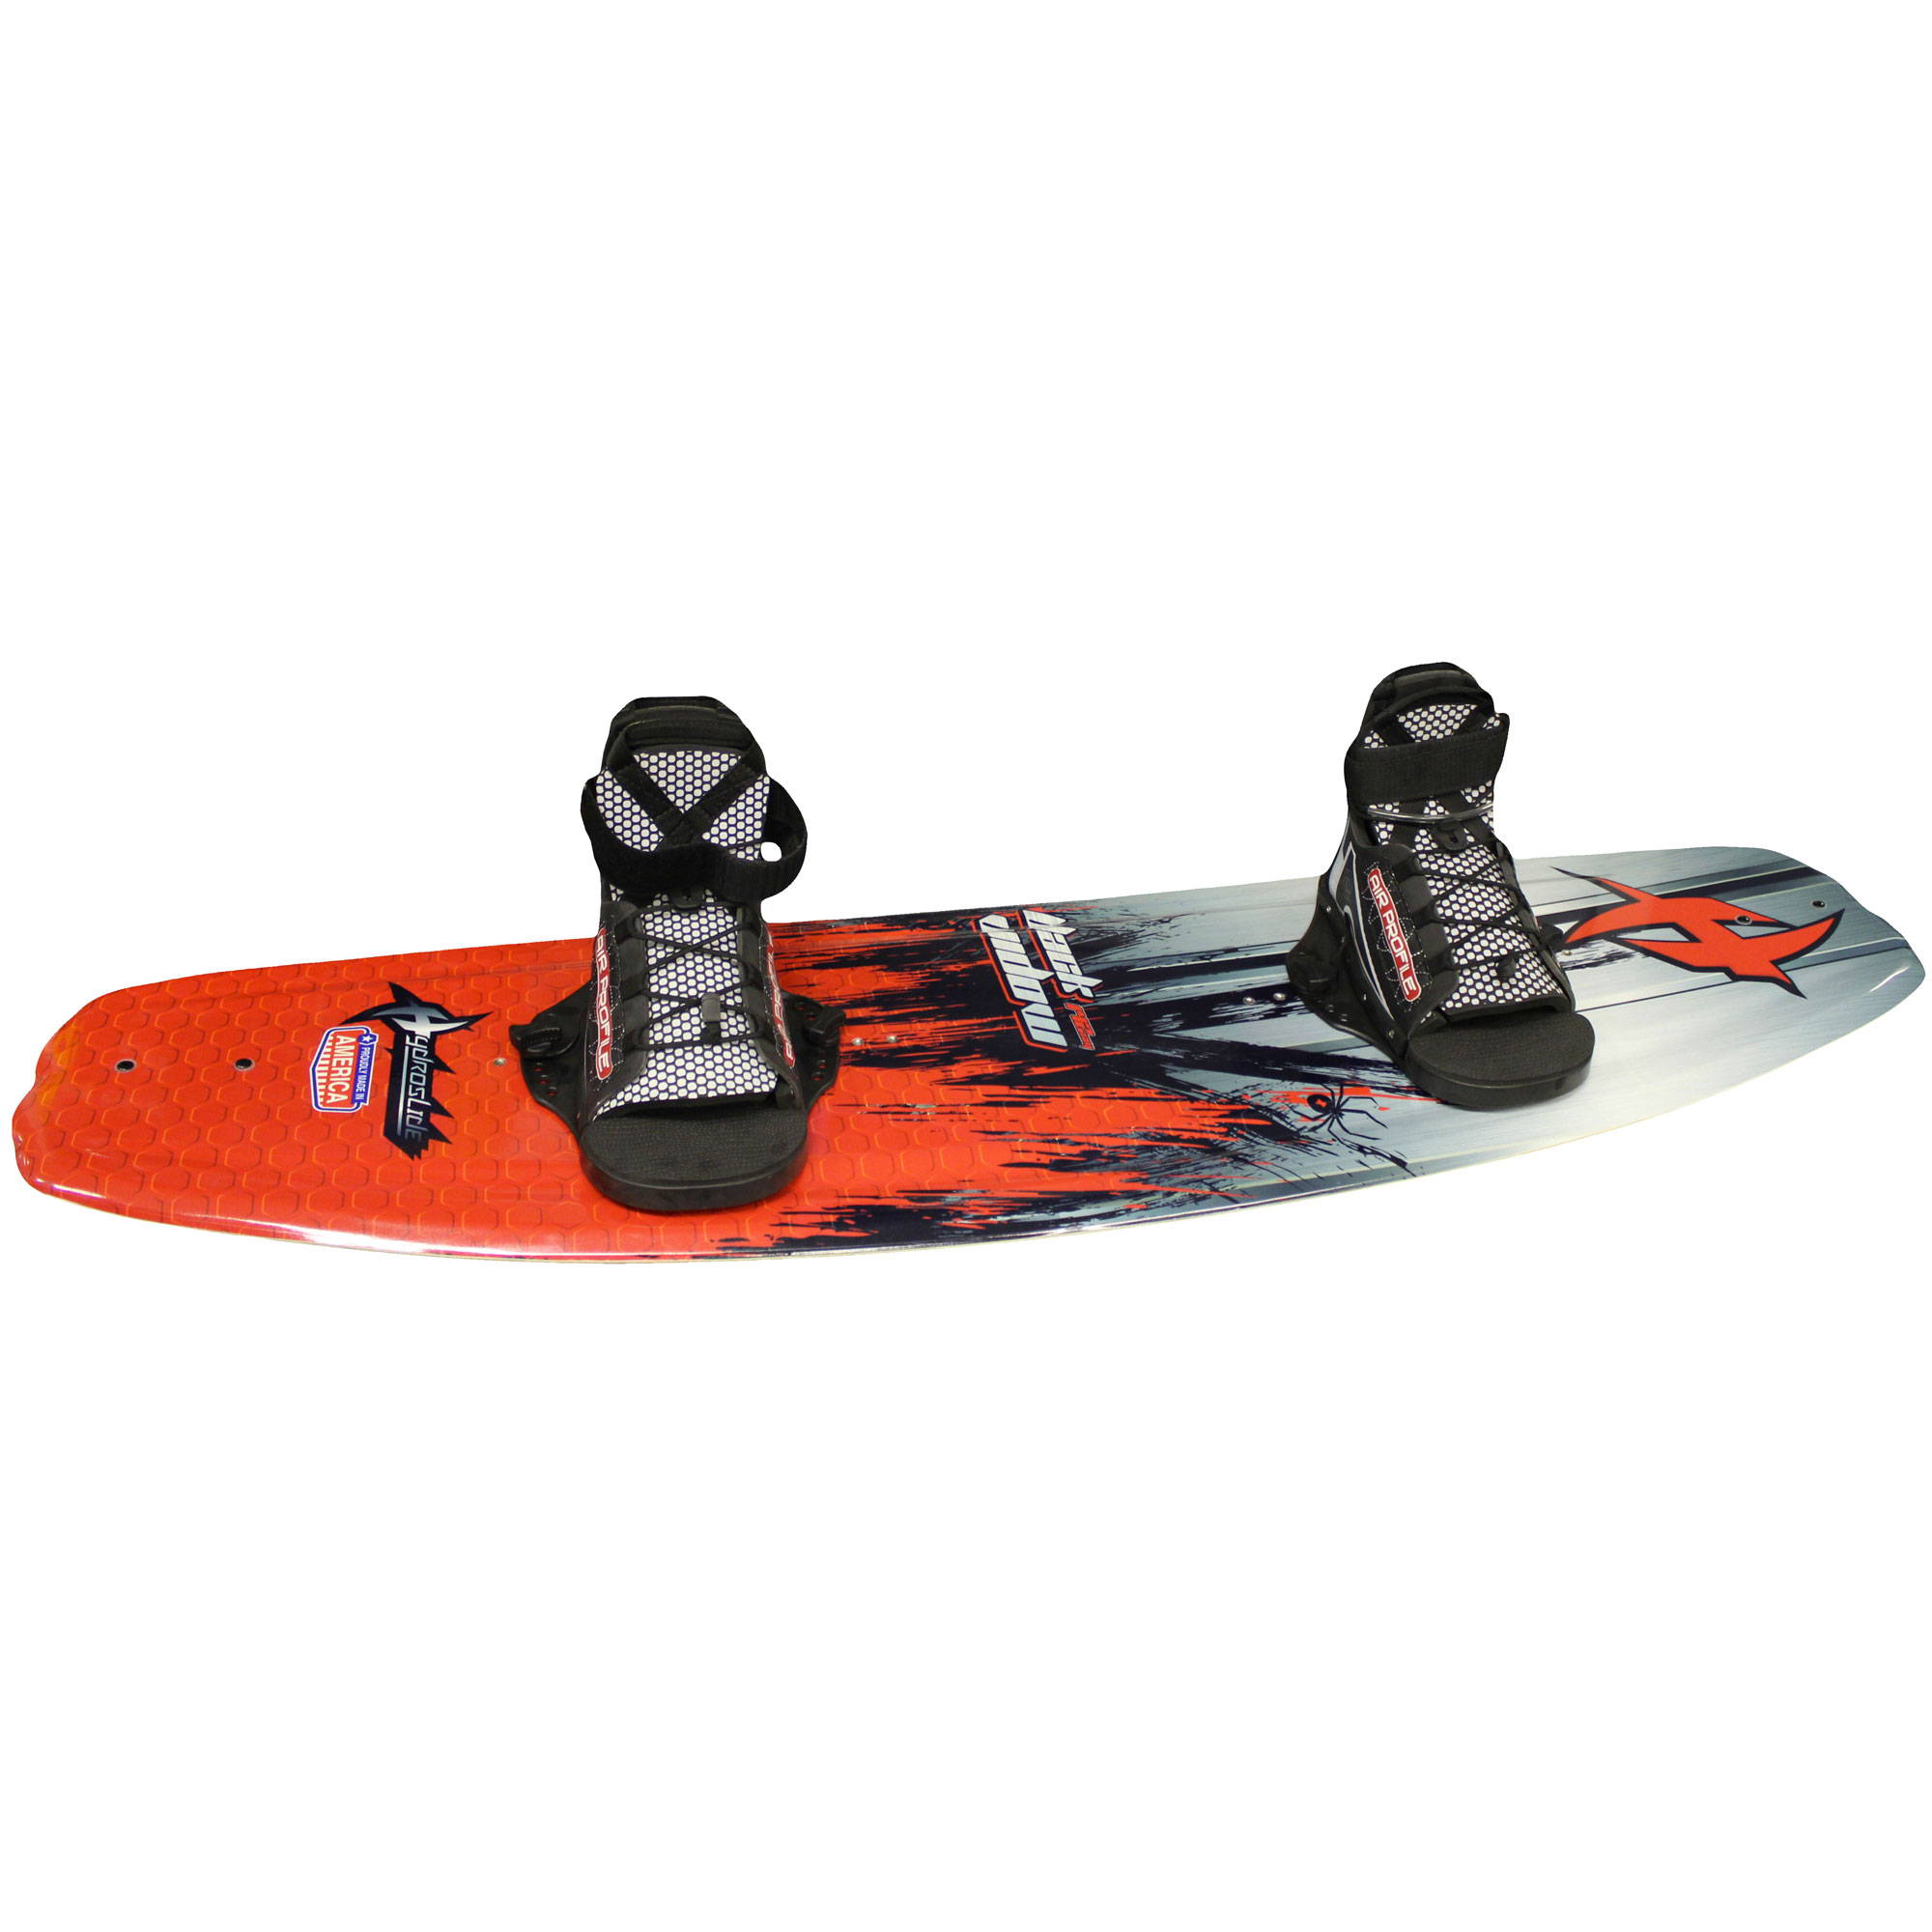 Hydroslide 2180266 2 Fin Design 56 Inch Black Widow Watersports Wakeboard, Red